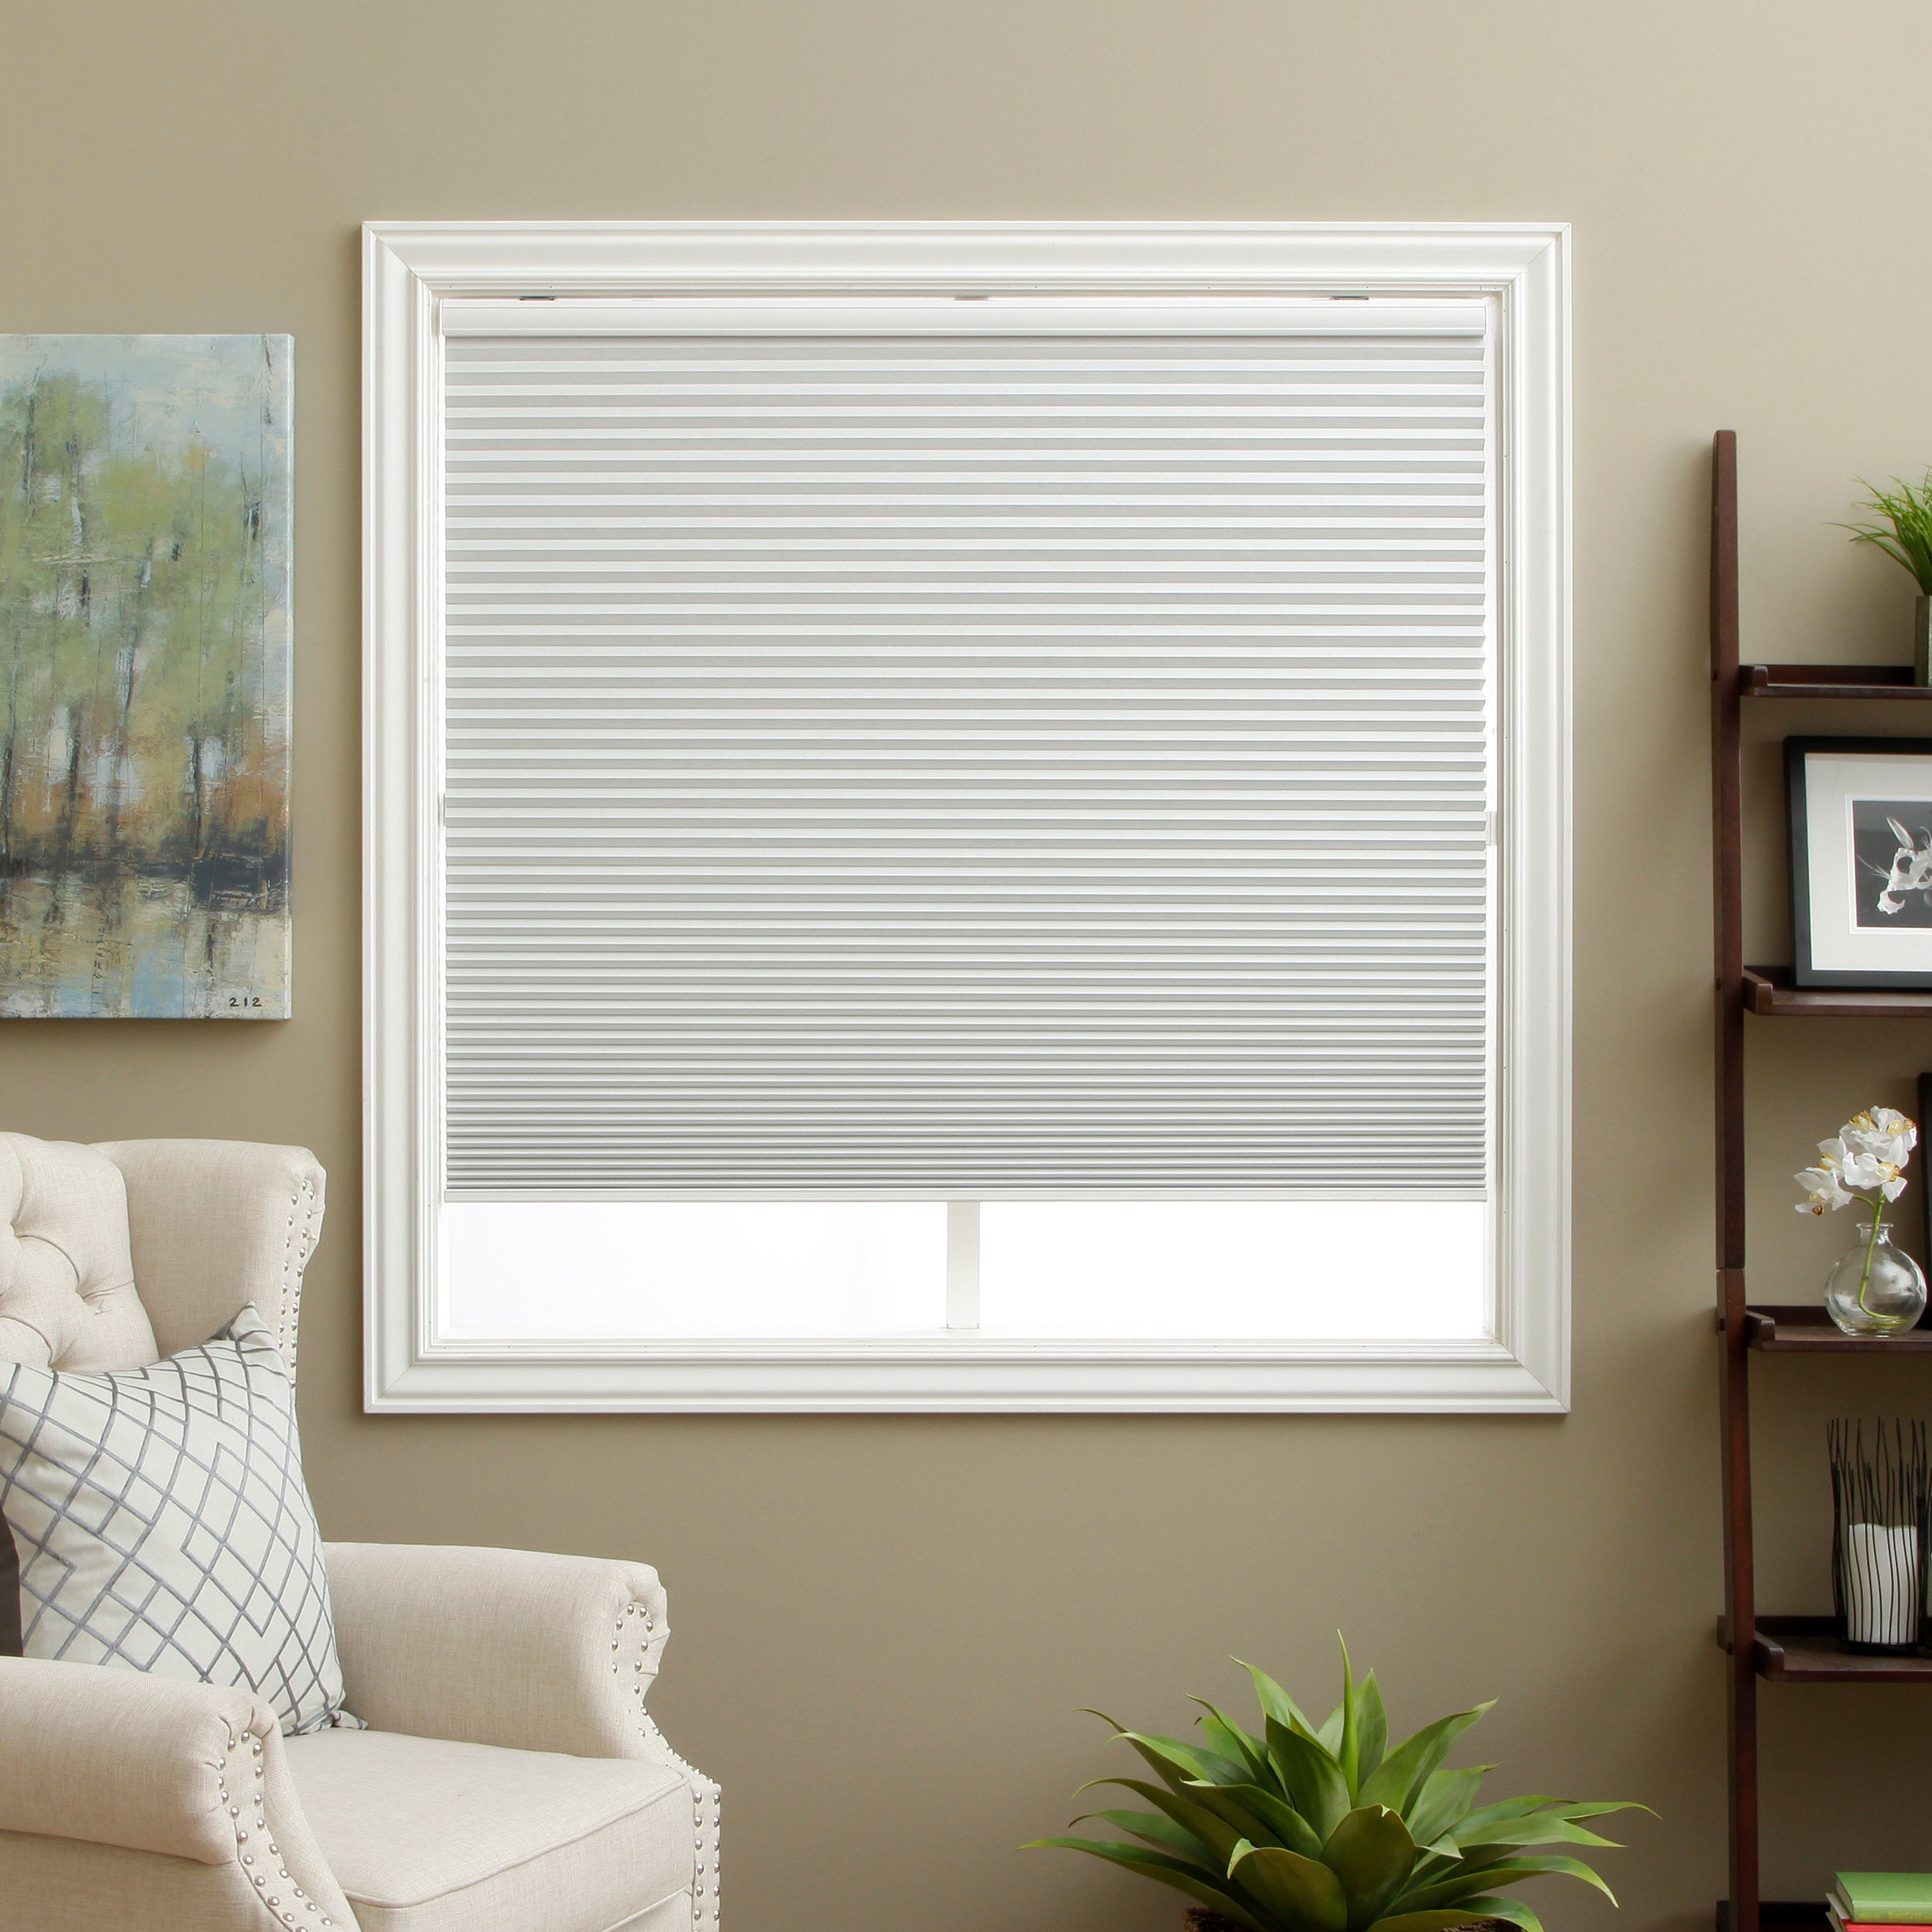 Arlo Navy Women 39 Shop Blinds White Room Darkening Cordless Lift Cellular Shades On Sale Free Shipping Today 5903809